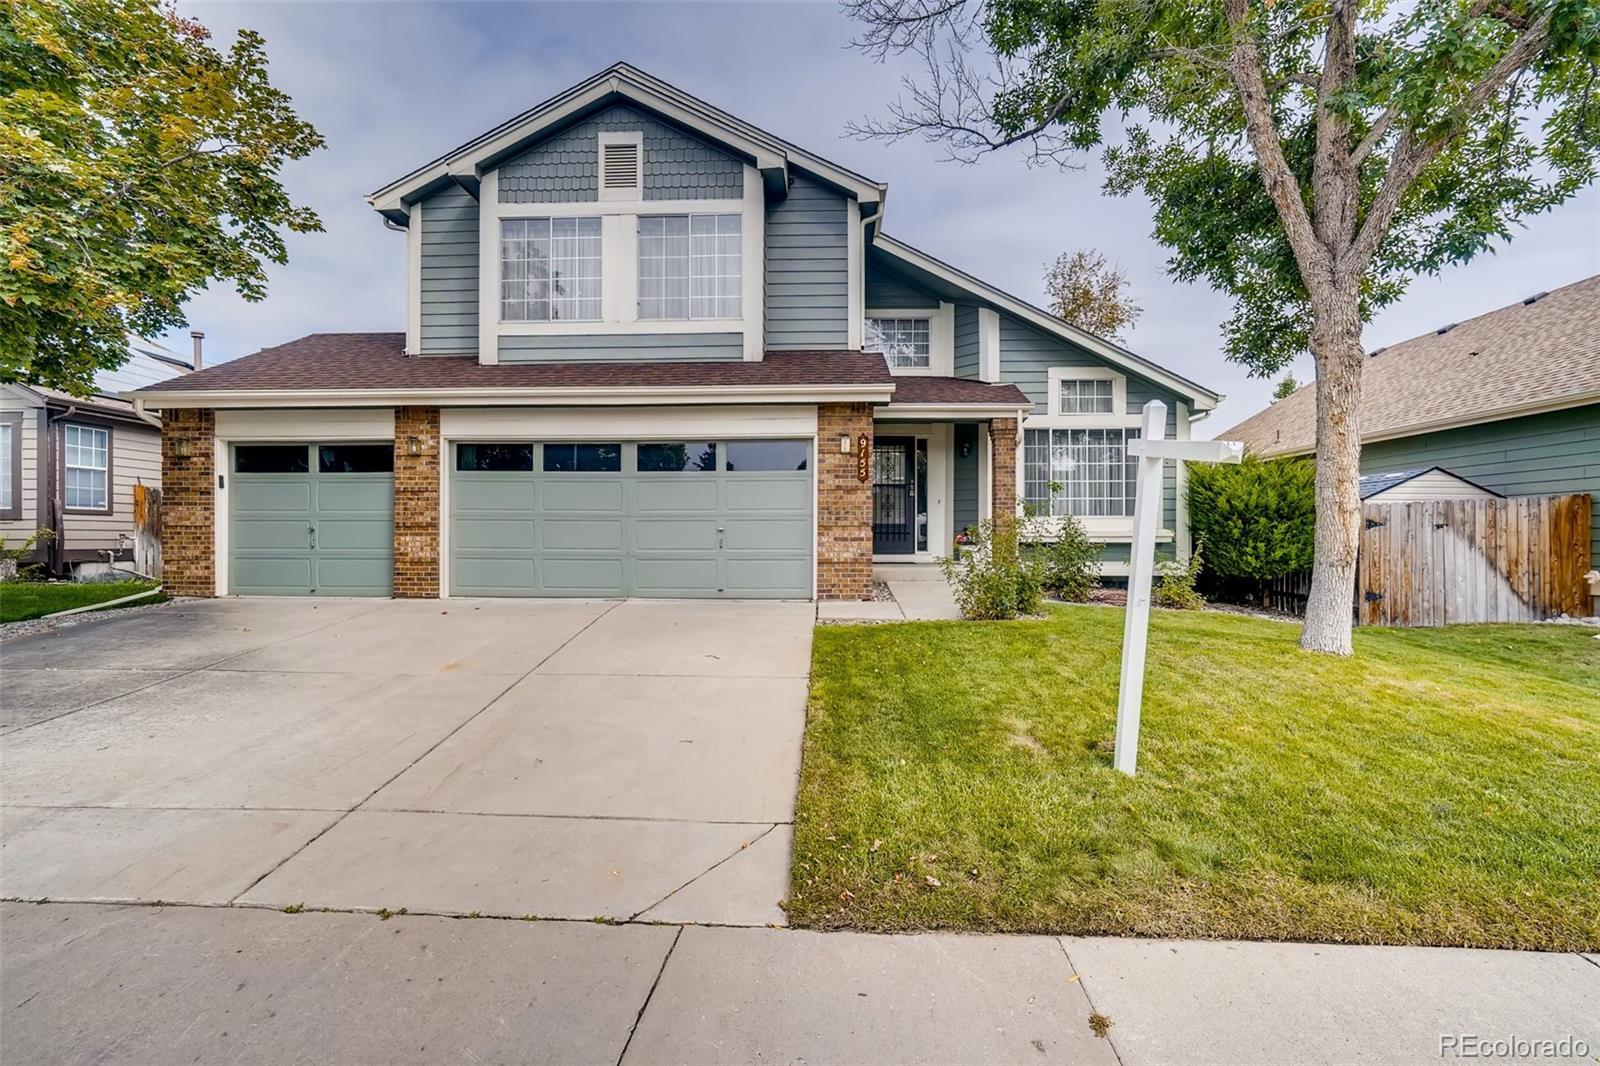 9155 W 102nd Place, Westminster, CO 80021 - #: 8465447